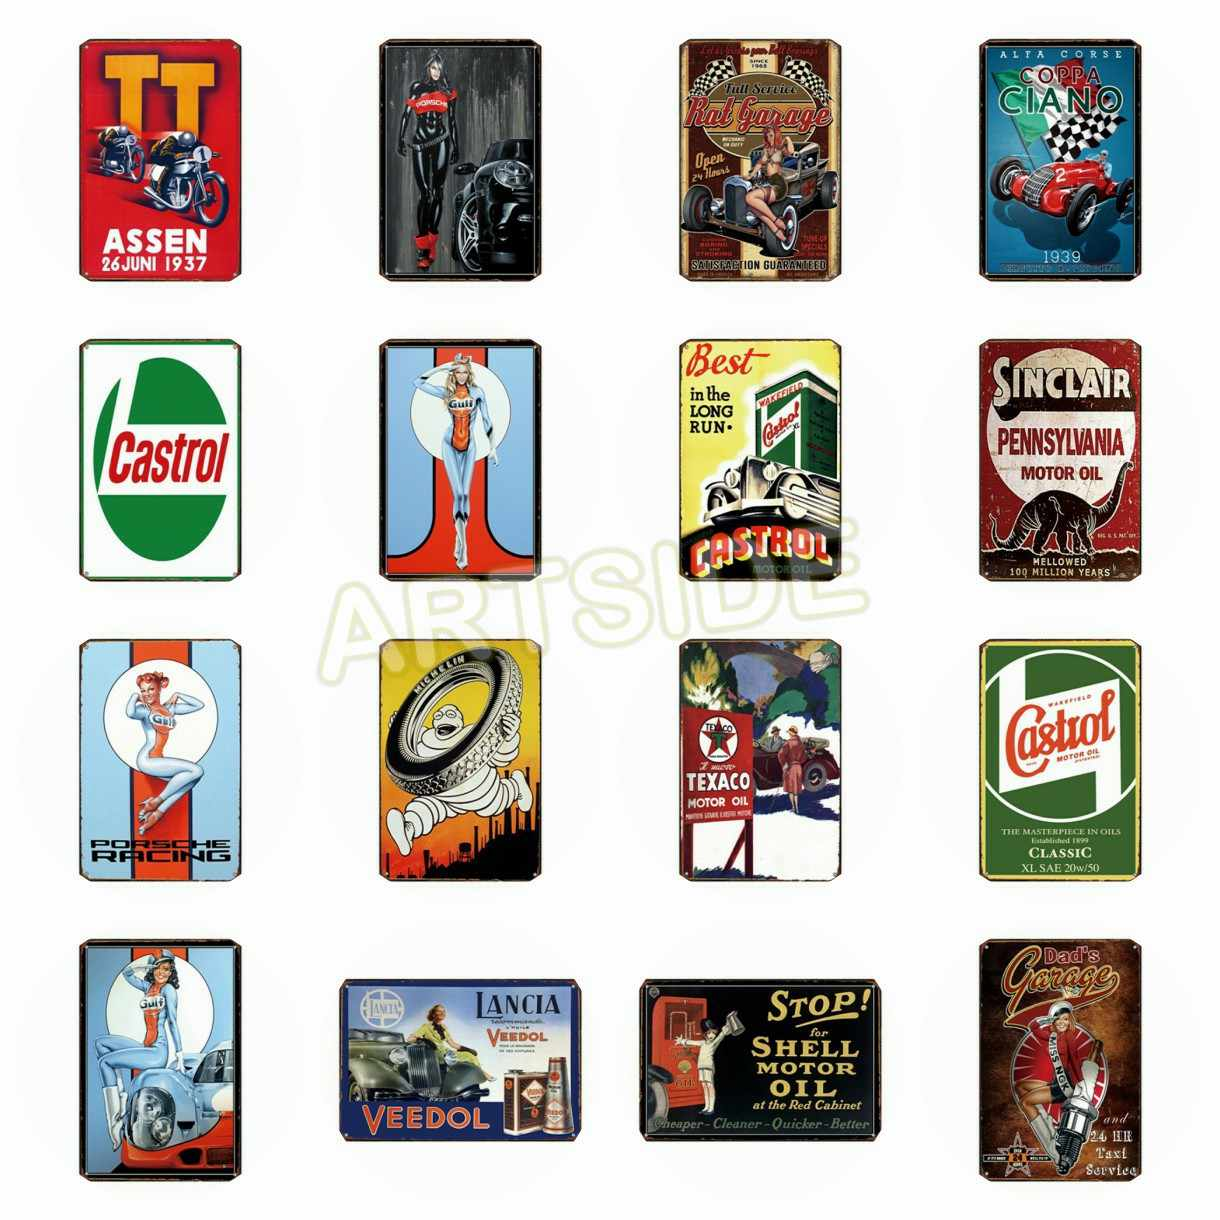 Vintage car signs clipart clipart black and white library Retro TEXACO Castrol Motor Oil TT ASSEN Motorcycle Car Gulf ... clipart black and white library